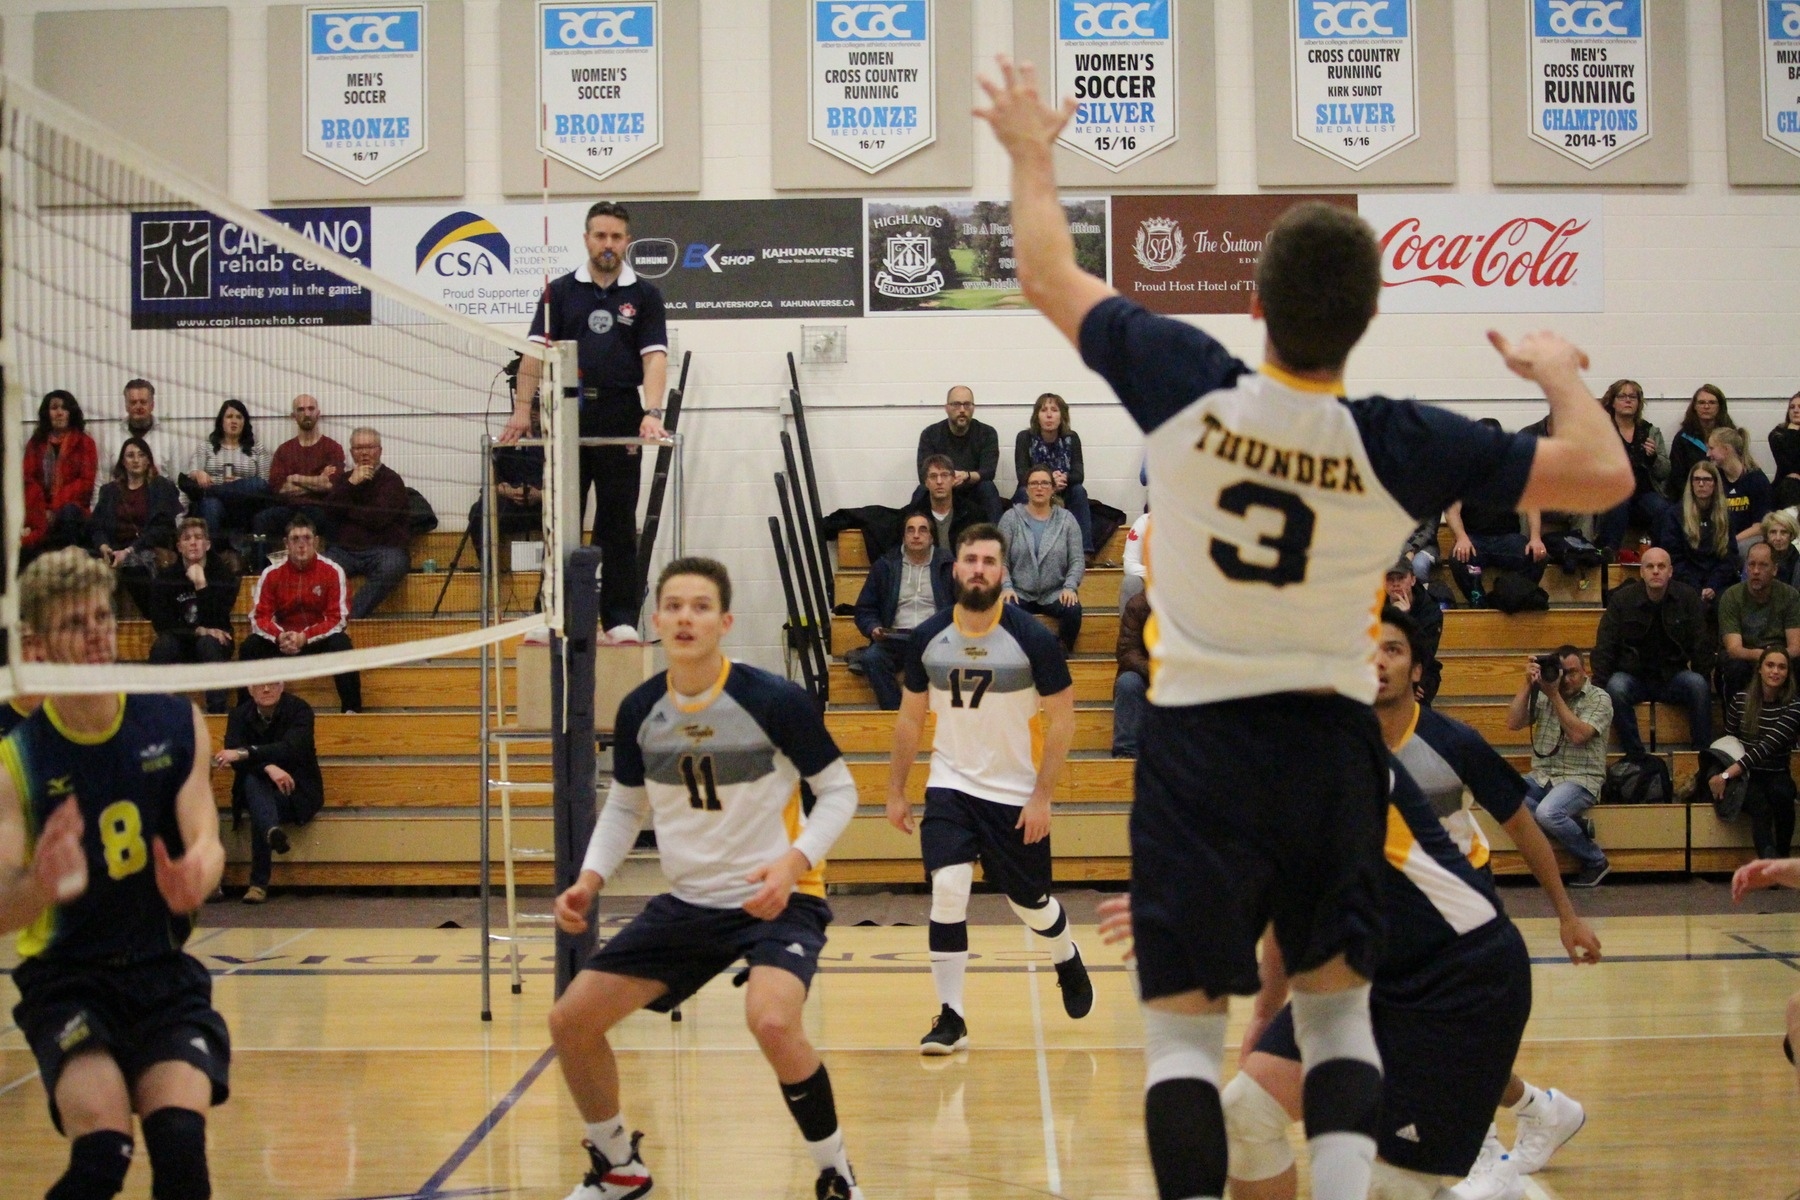 Thunder fall to visiting Ooks in a 4 set game